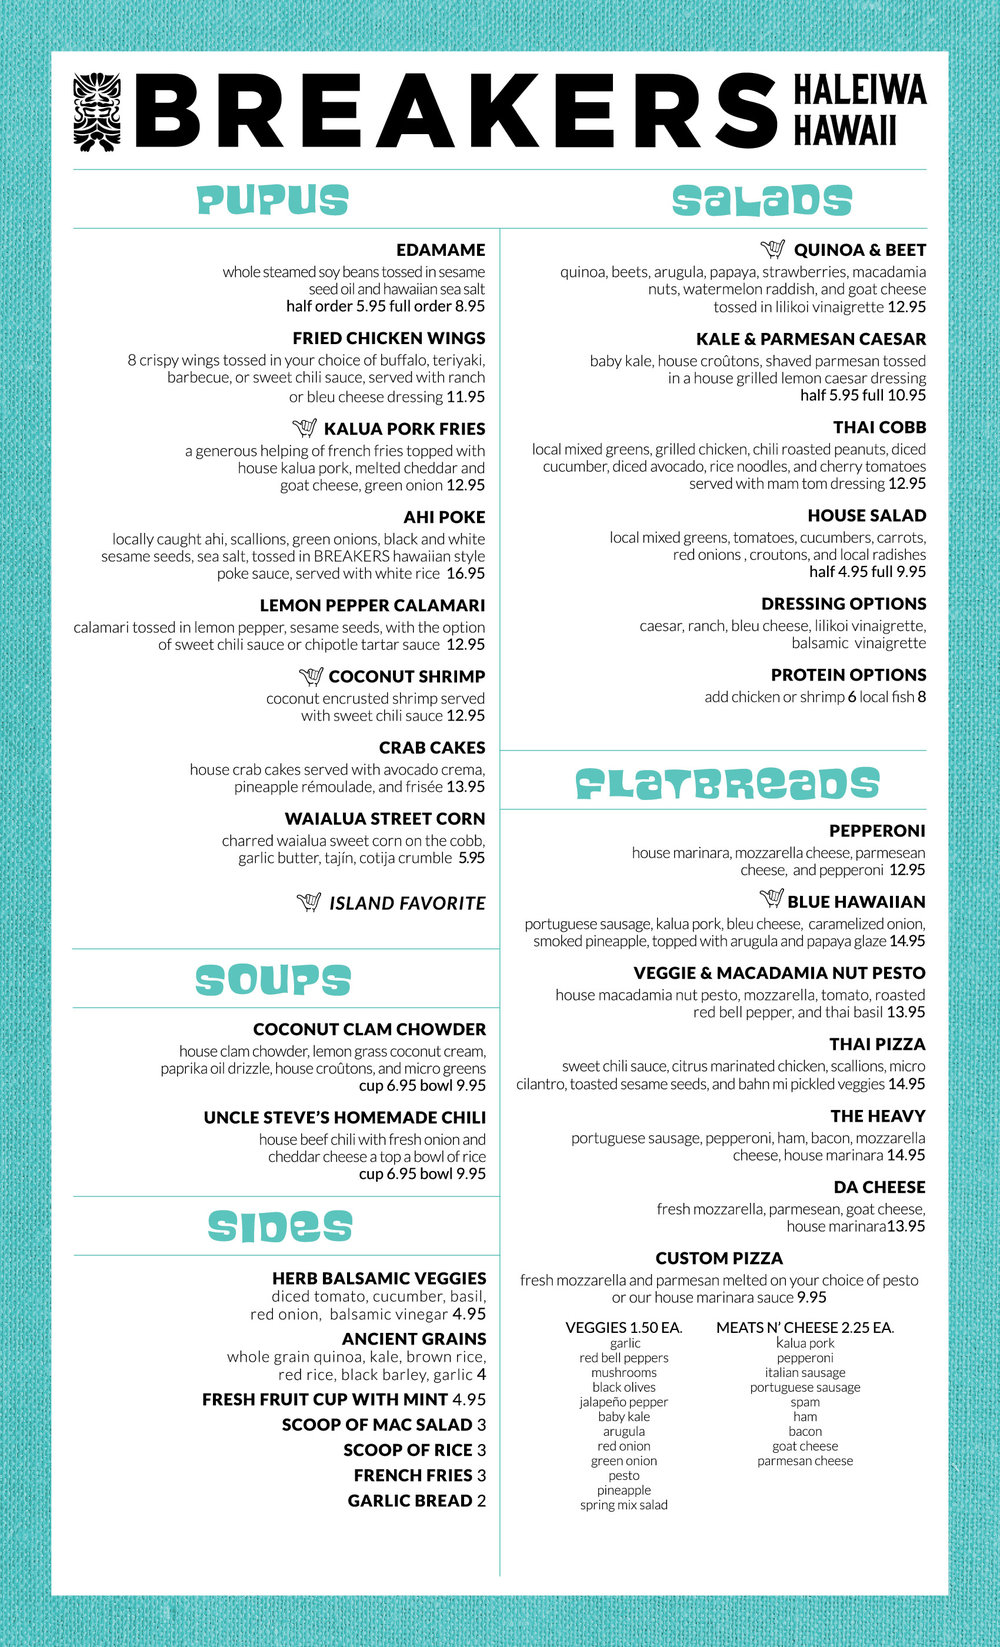 breakers_lunch_dinner_menu_PRINT_may 15 2018.jpg